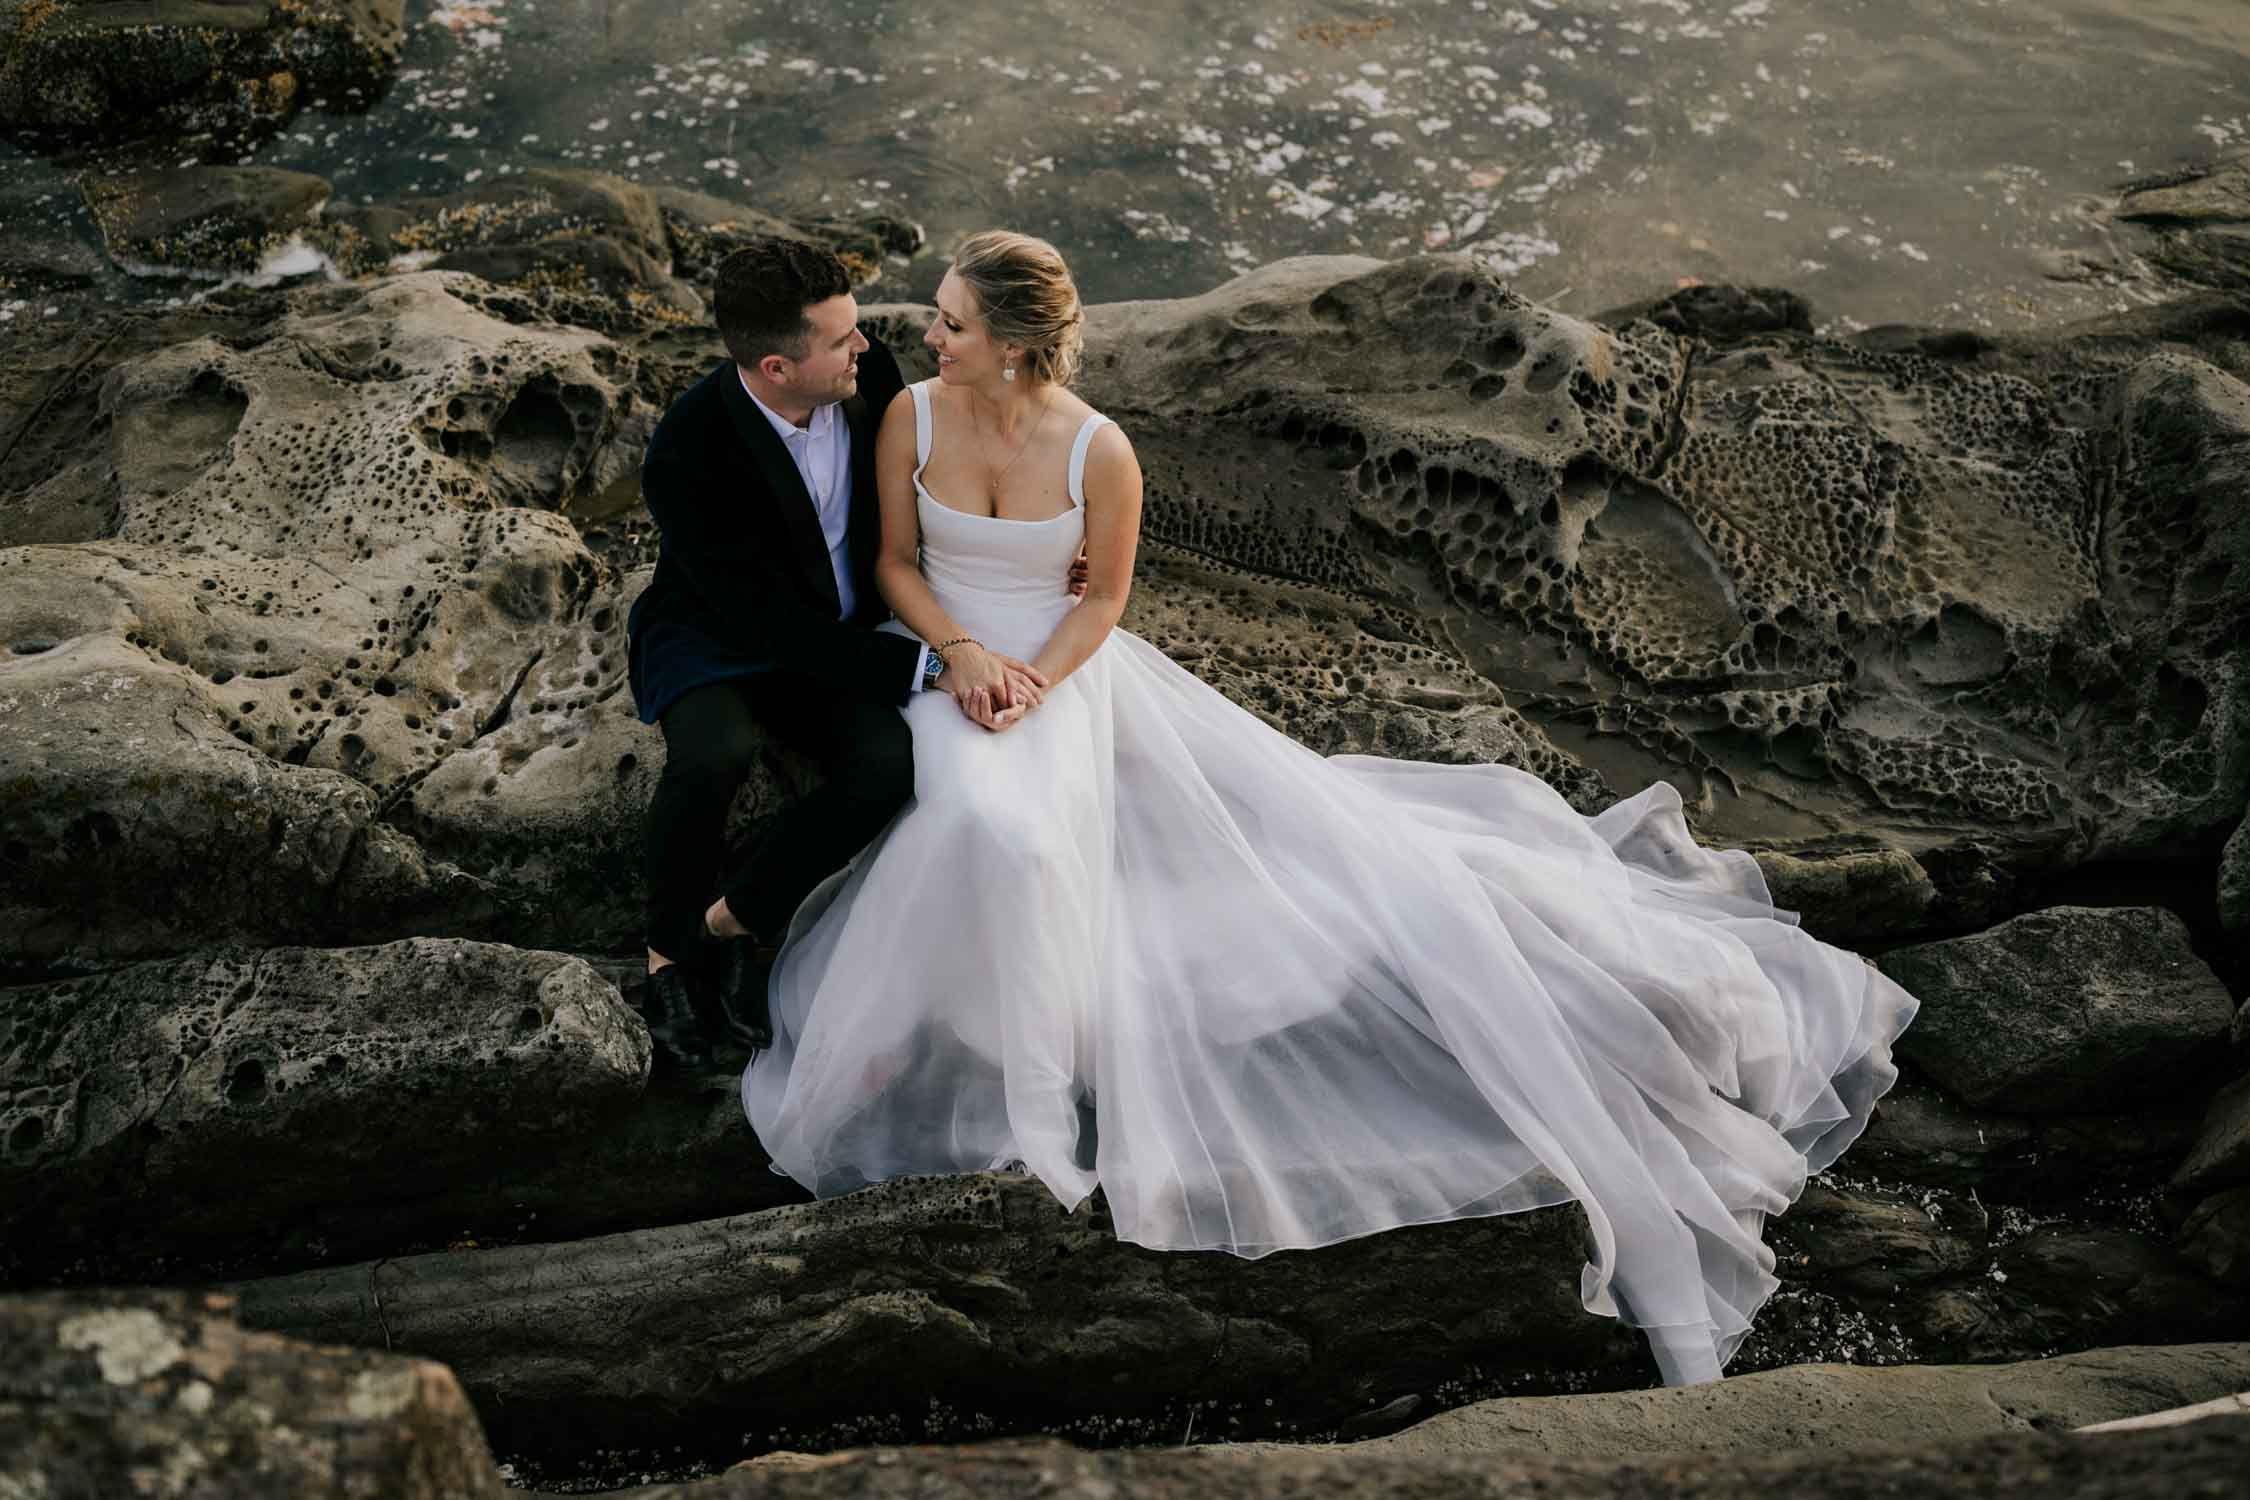 Best Vancouver Island Wedding Photographer captures intimate beach wedding on Vancouver Island at beautiful venue and location with sea and mountain views